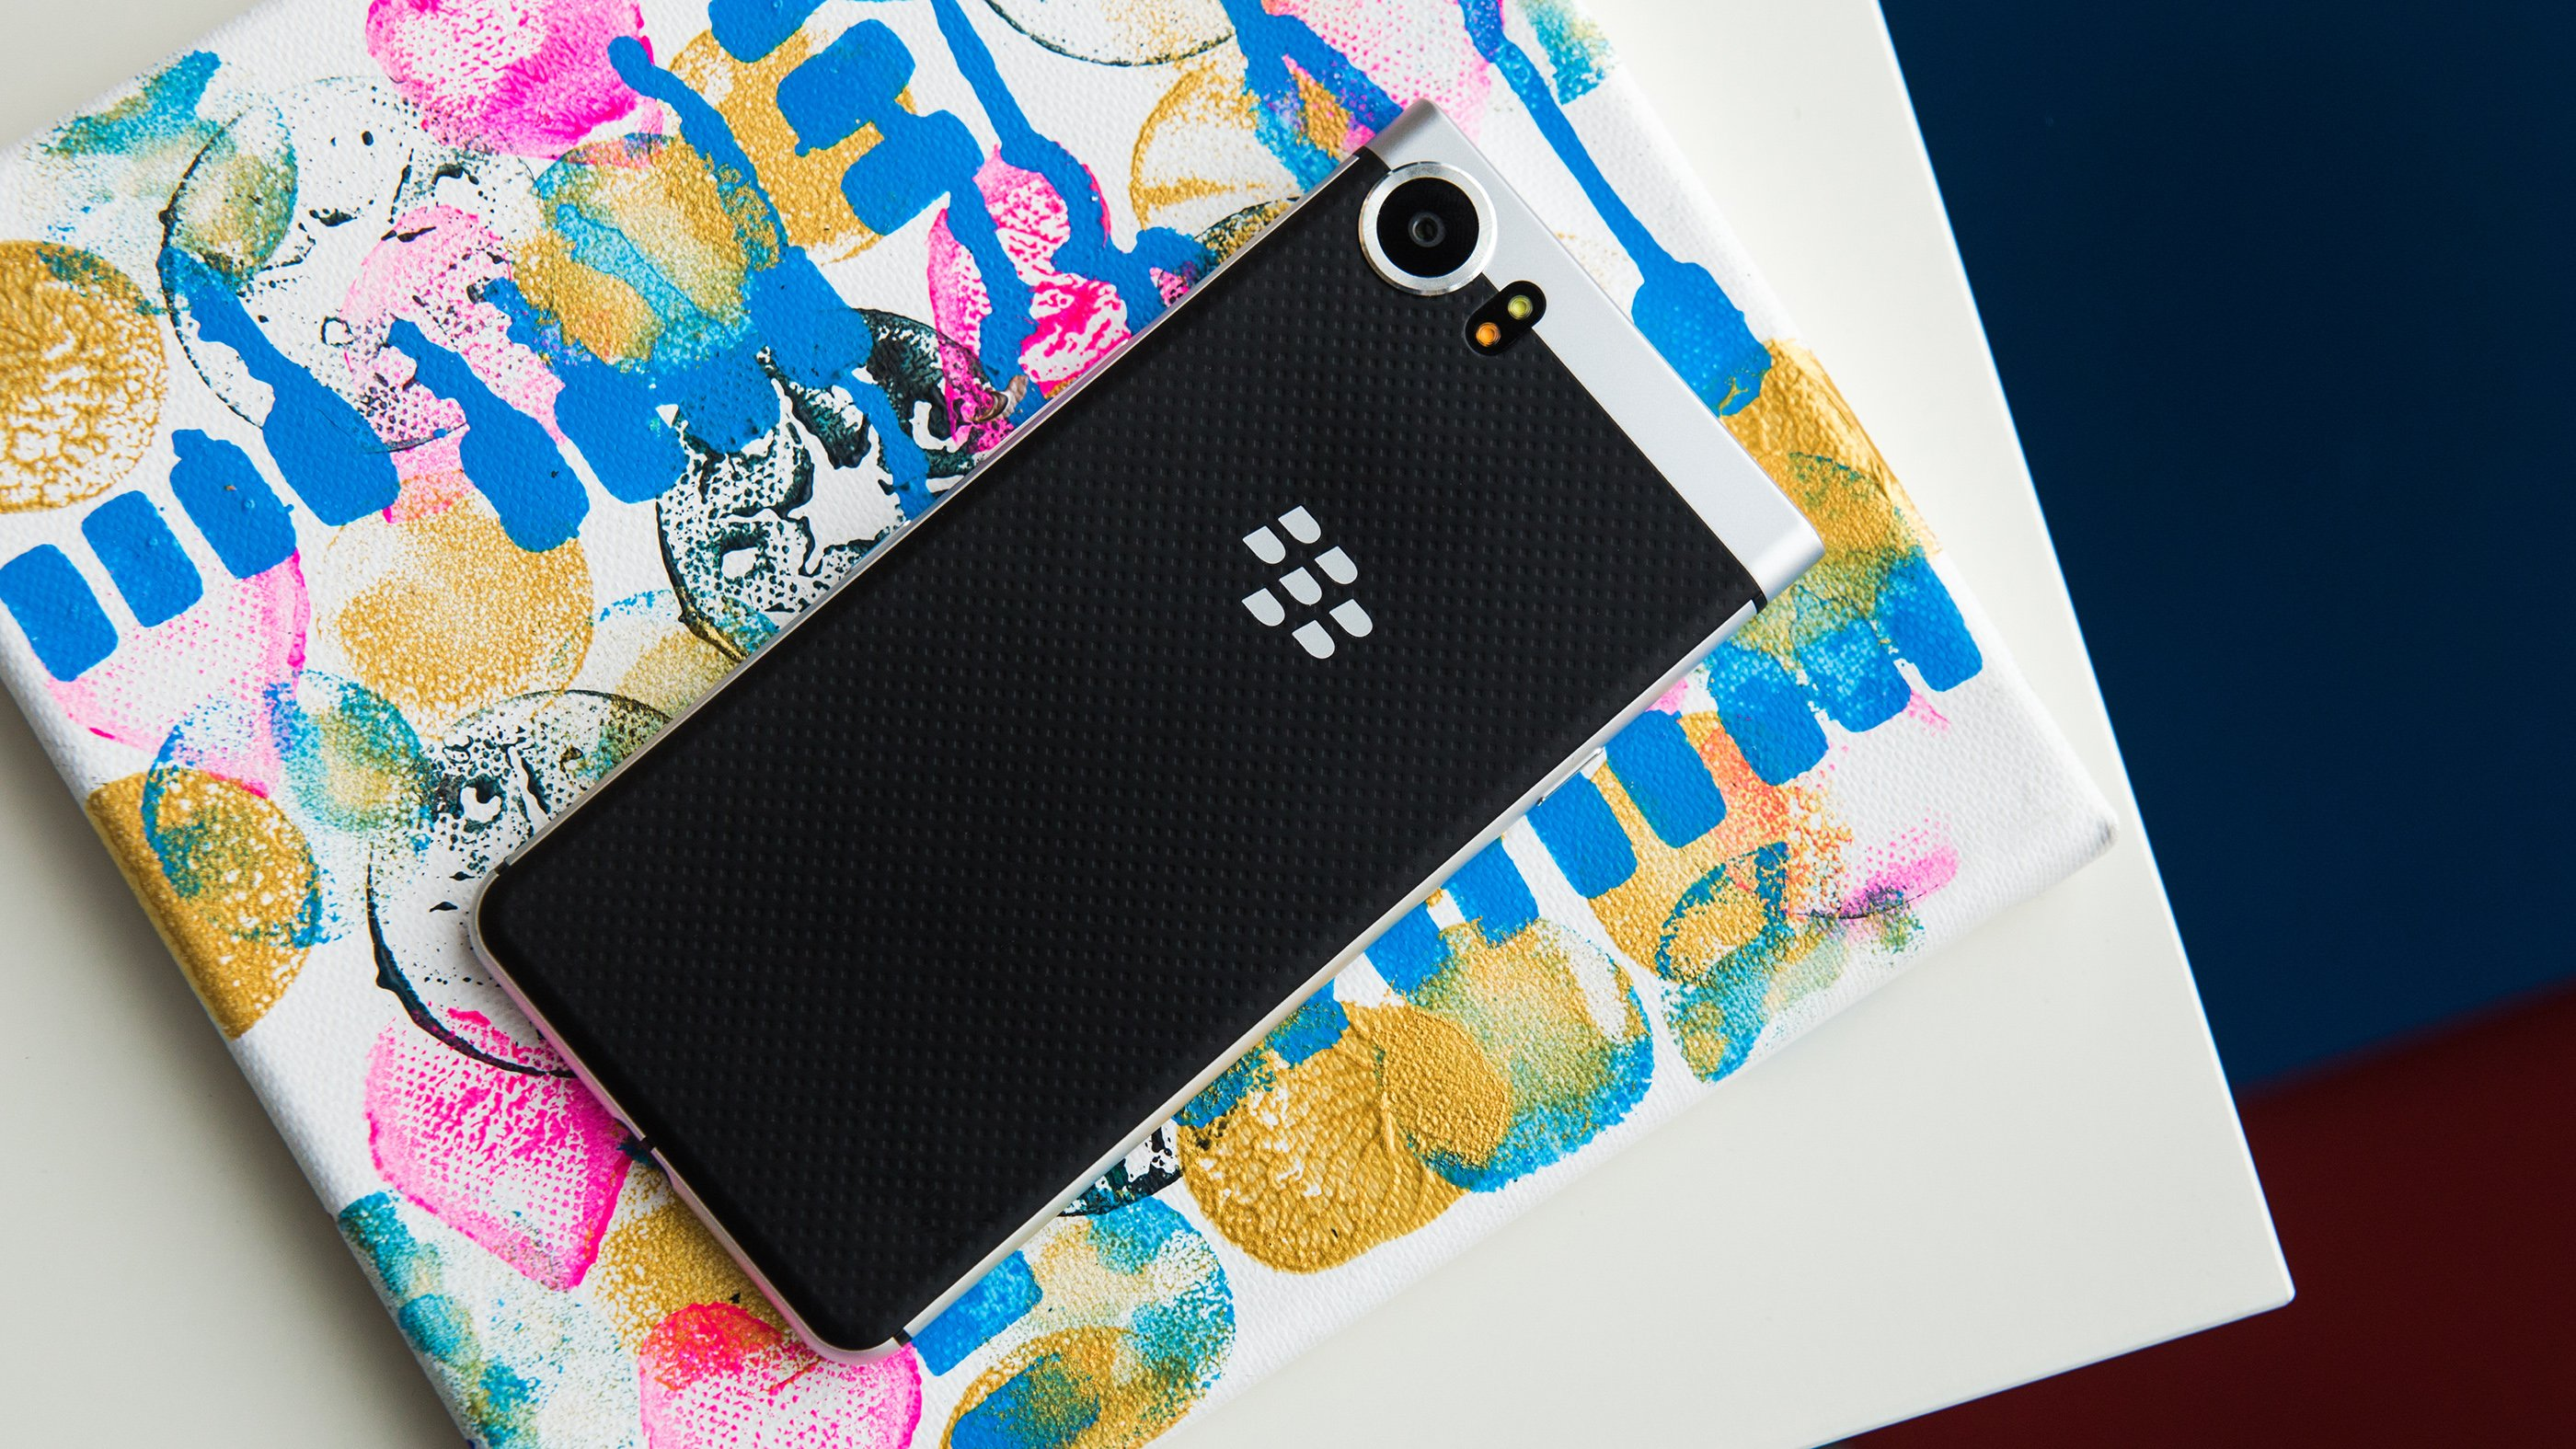 Blackberry Keyone Review The Keyboard Is Here To Stay Androidpit Line Sim Bb9800 Short Circuit For Repair Gsmforum